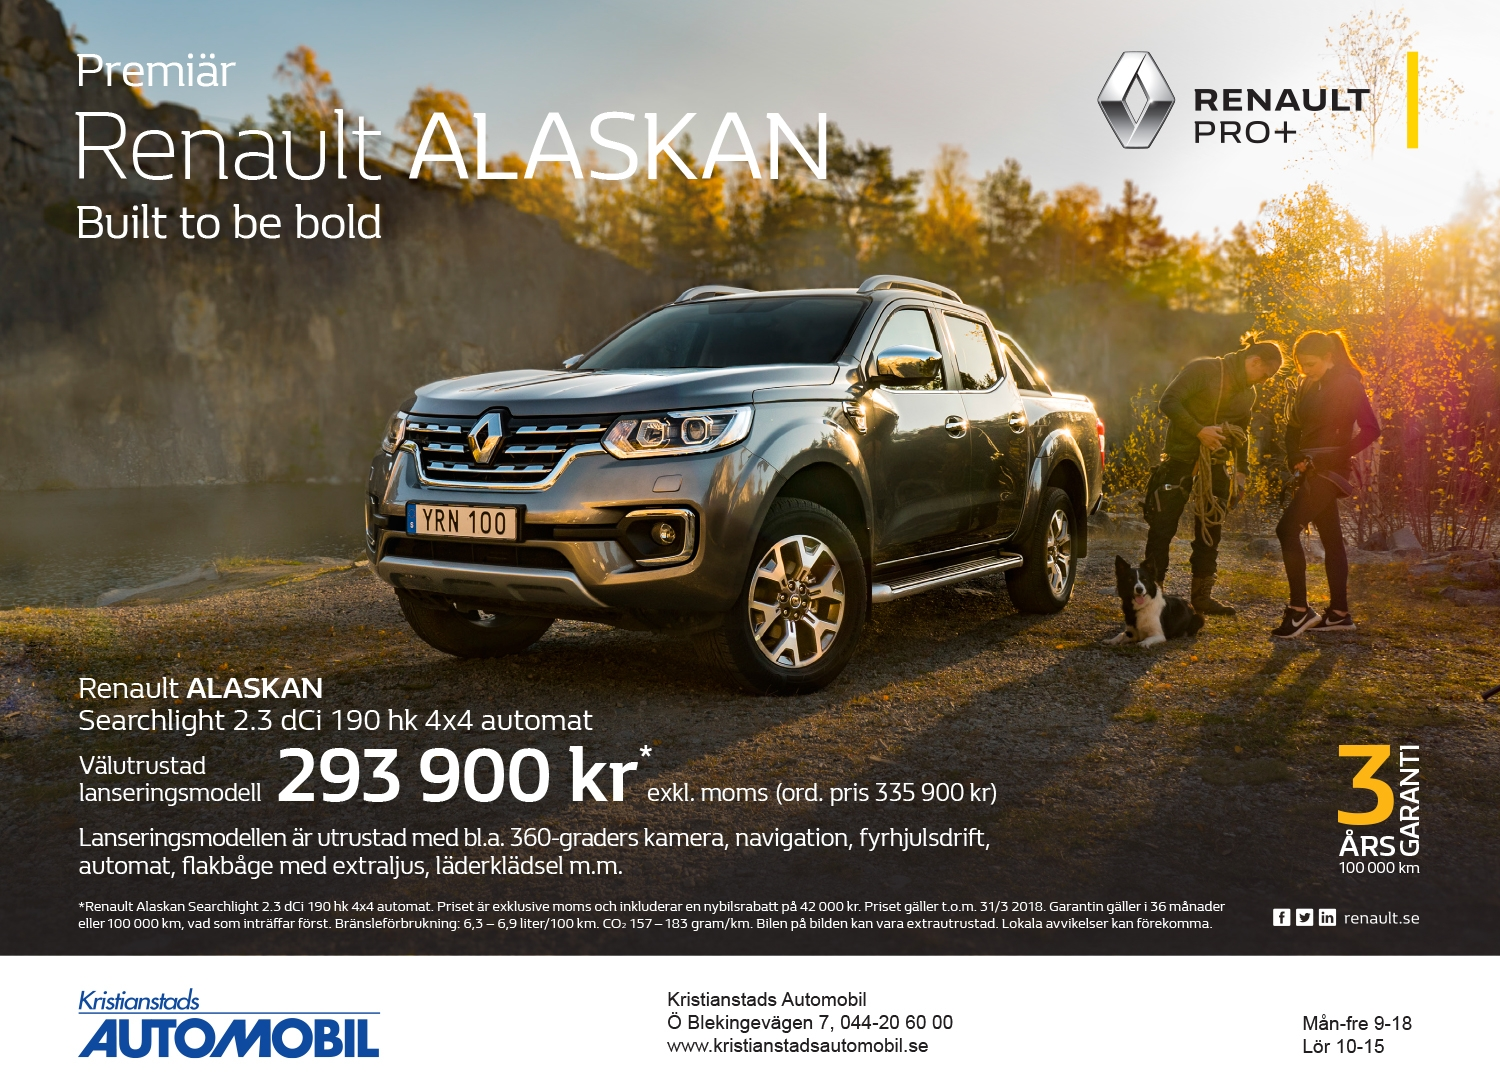 Renault ALASKAN - Built to be bold